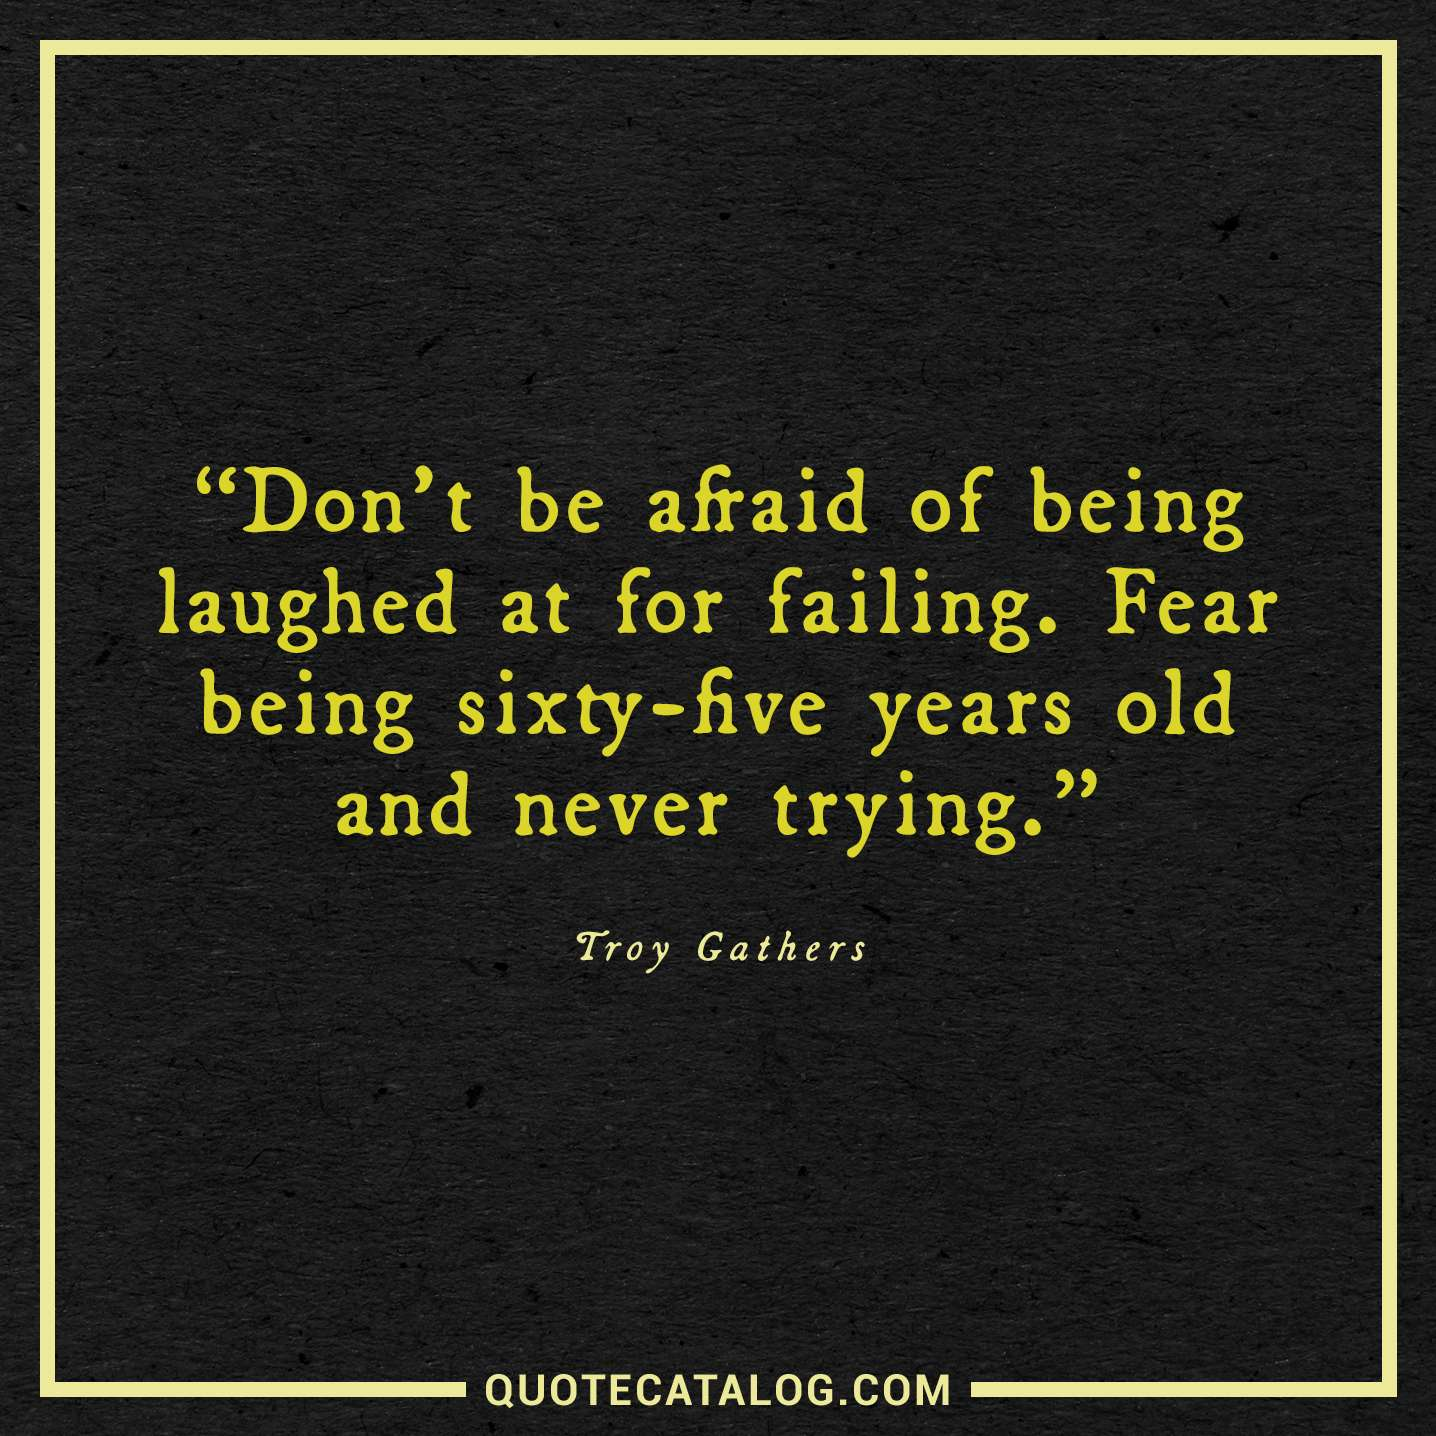 Donu0027t Be Afraid Of Being Laughed At For Failing. Fear Being Sixty